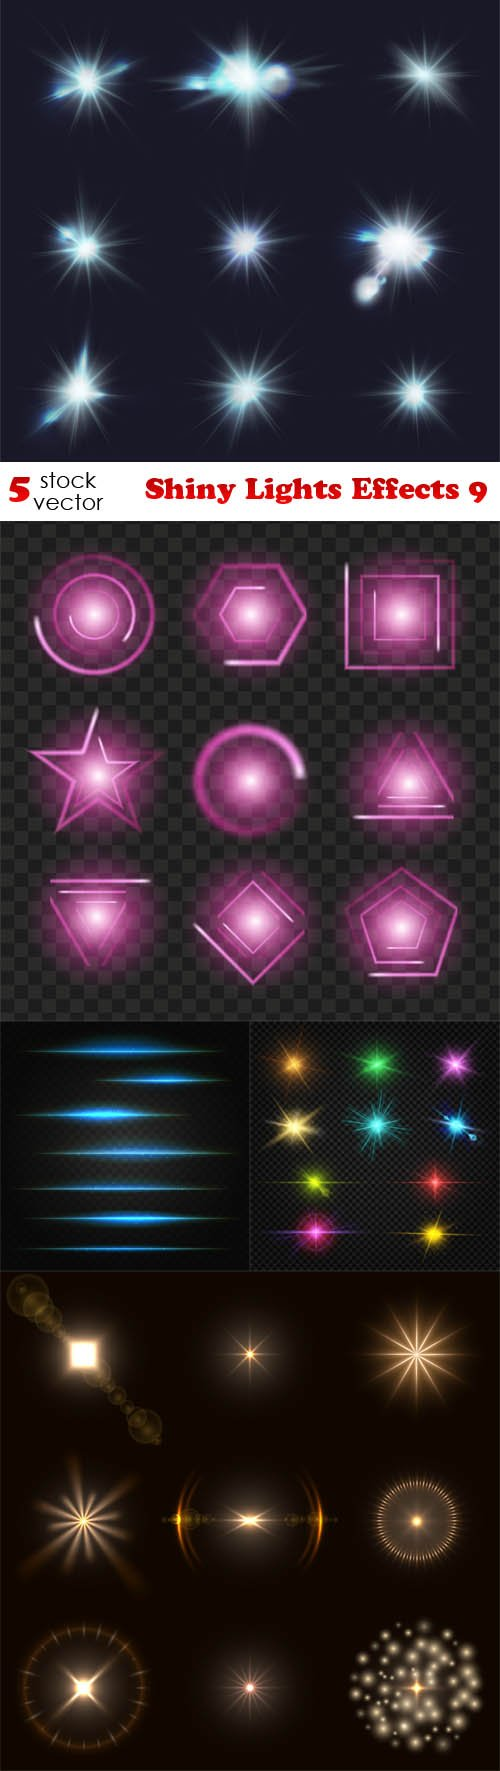 Vectors - Shiny Lights Effects 9